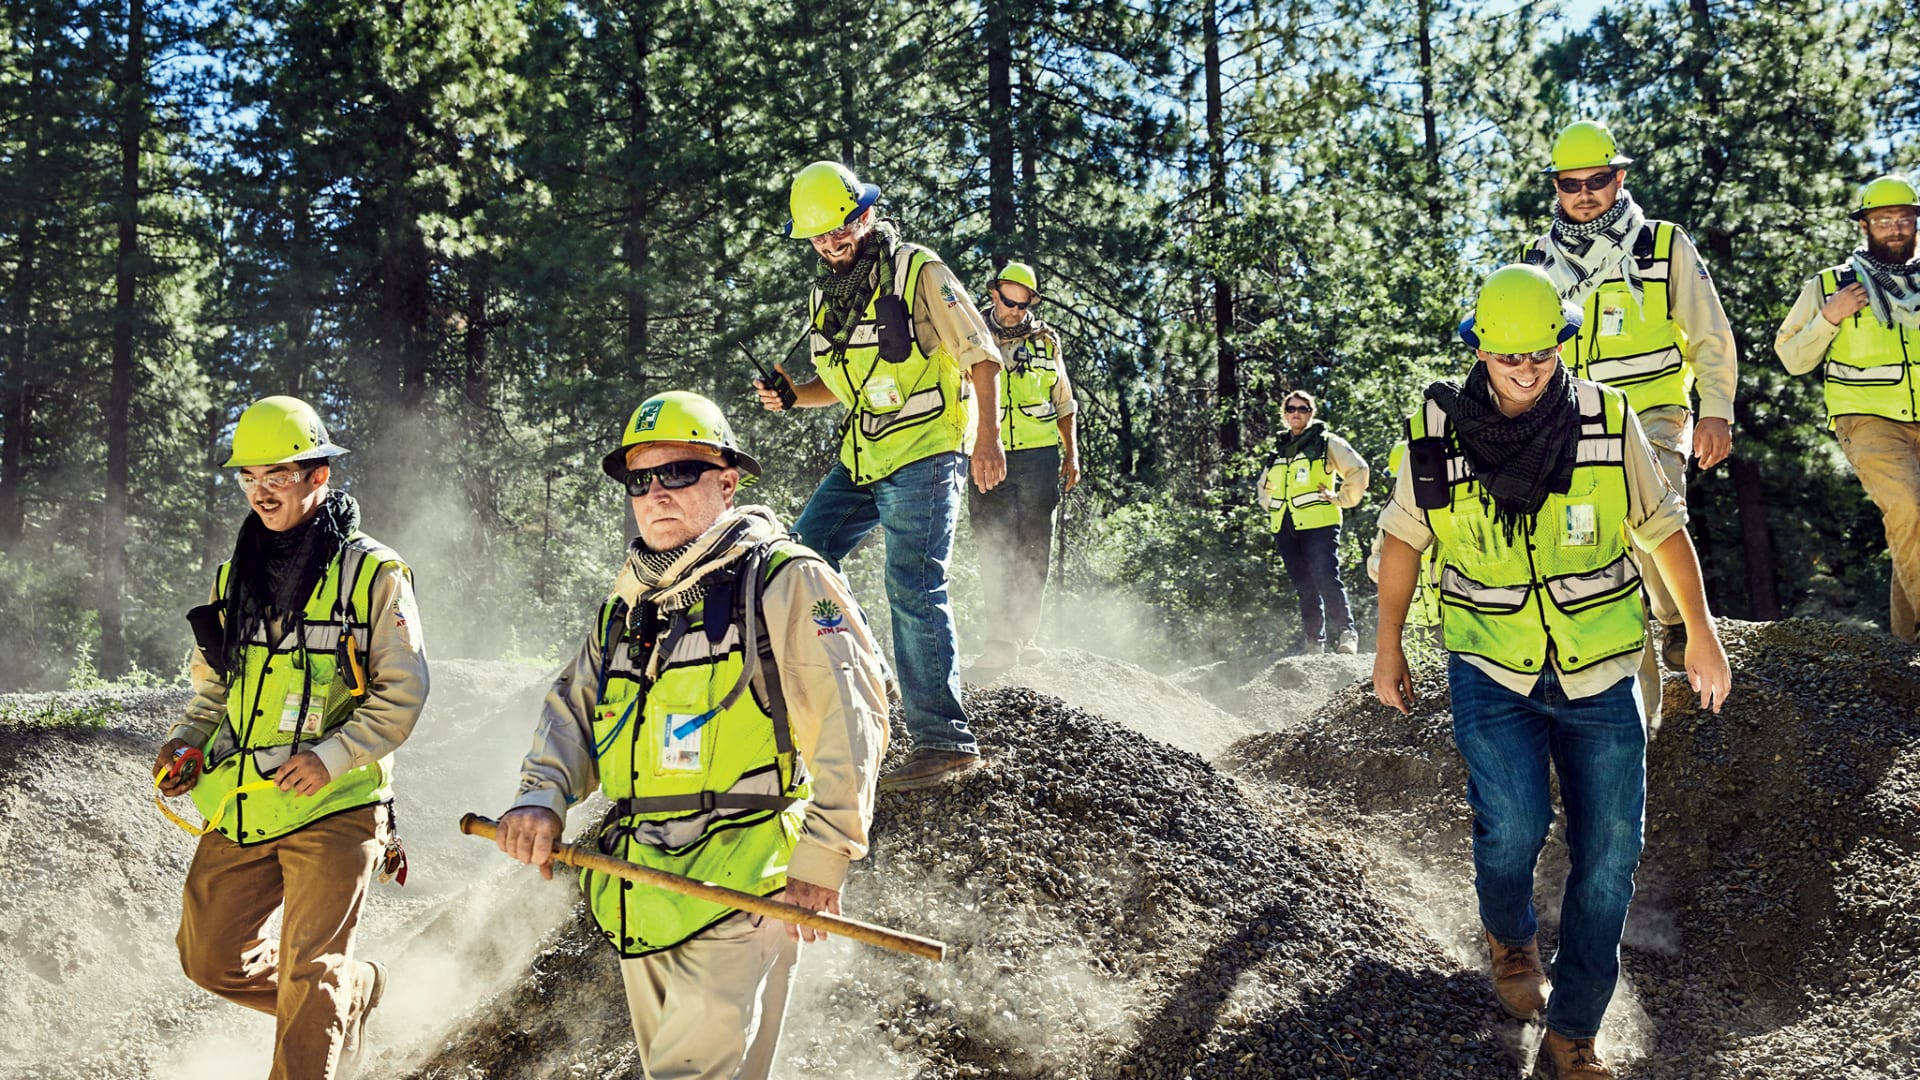 This Company Sends Foresters Into the Woods to Prevent Wildfires--and Save Lives